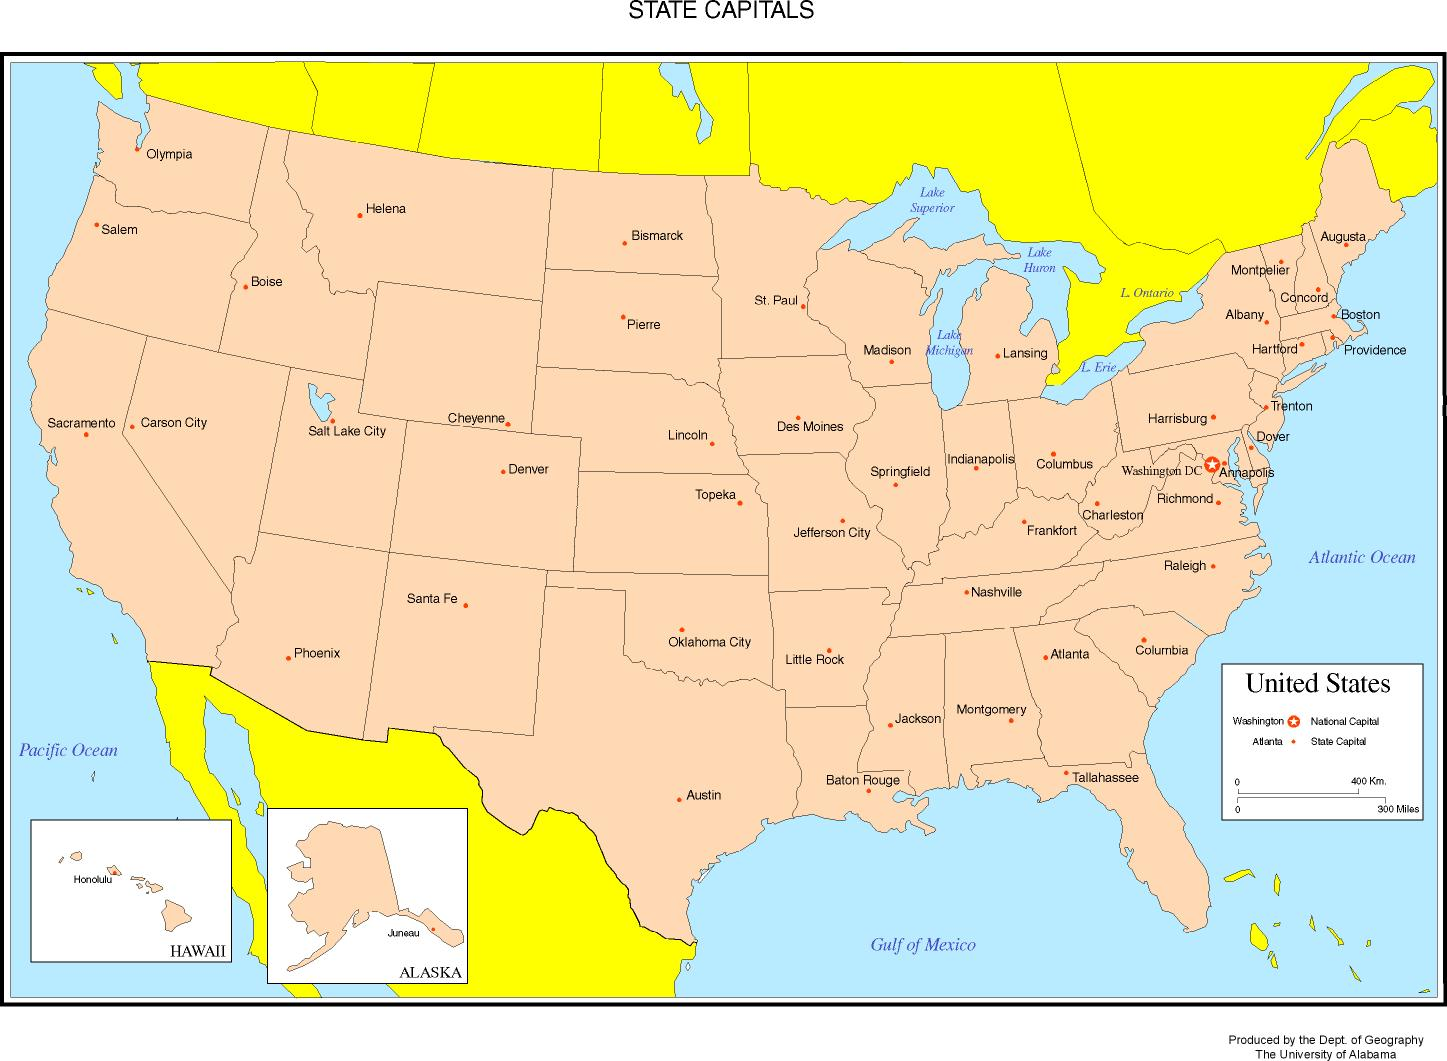 Maps Of The United States - Capitals of us states map